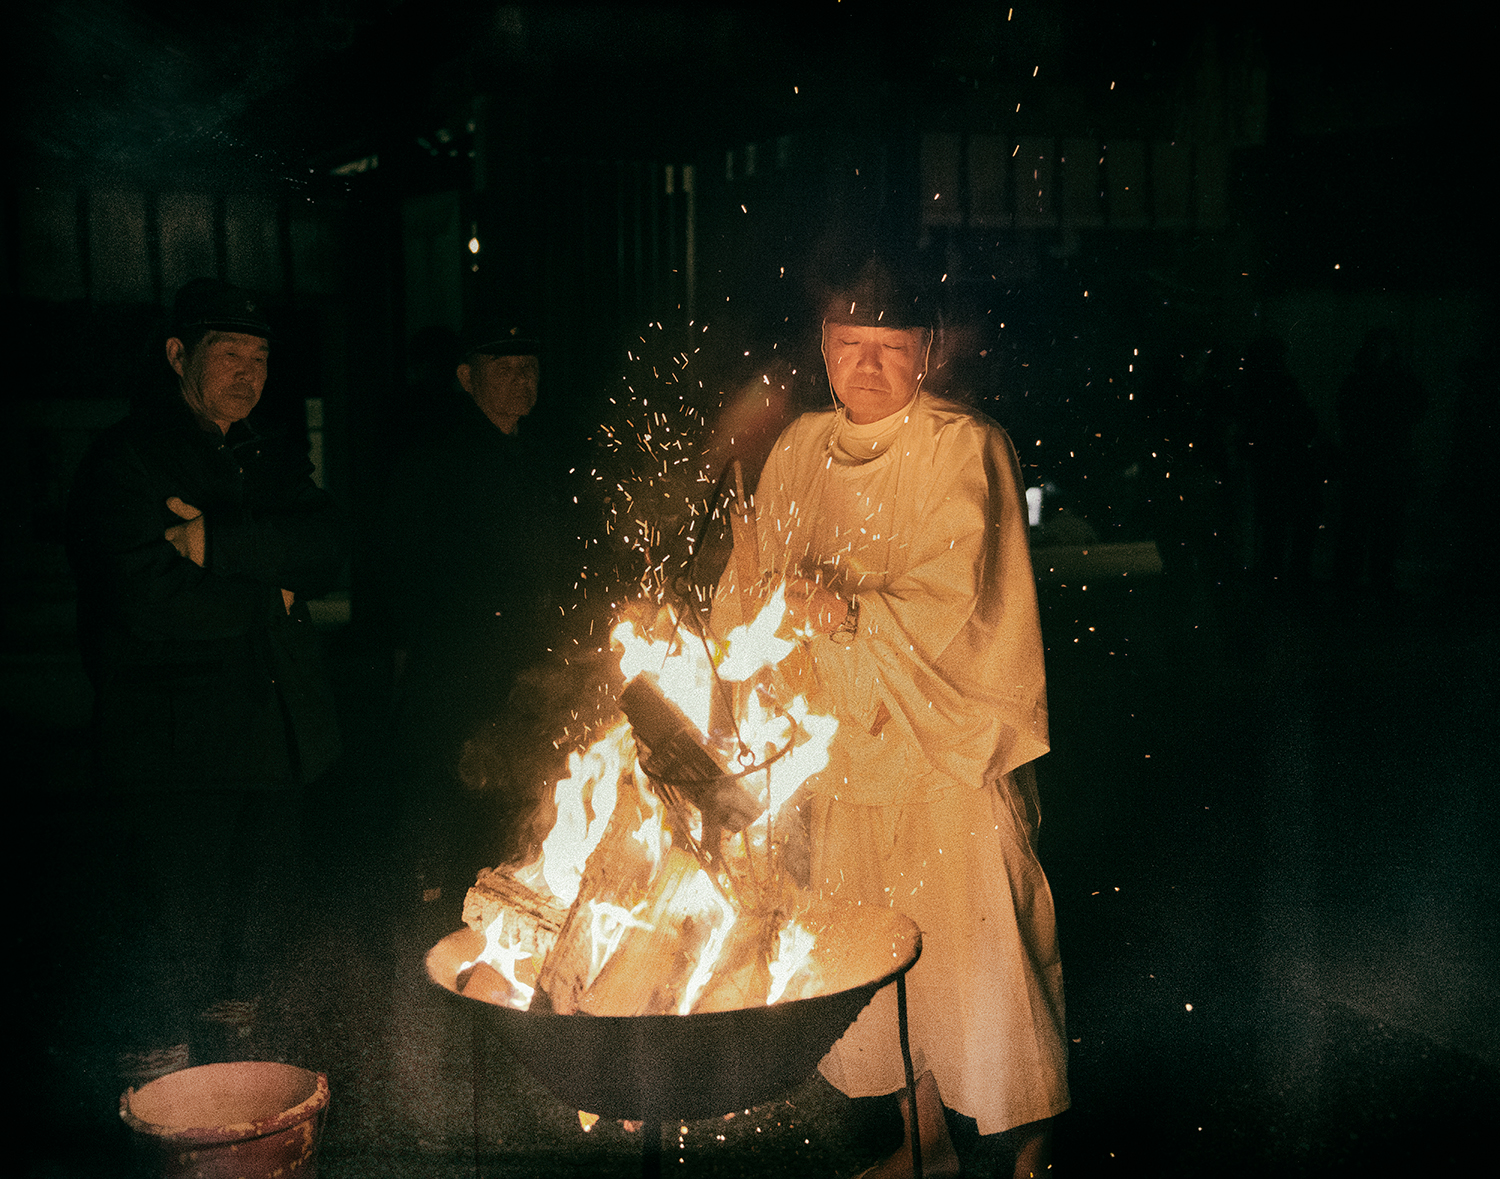 The Yoi-Matsuri ceremony, the night before the Aofushigaki Ritual at Miho Shrine. The man responsible for the lantern touch keeps the fire alive during the ceremony.